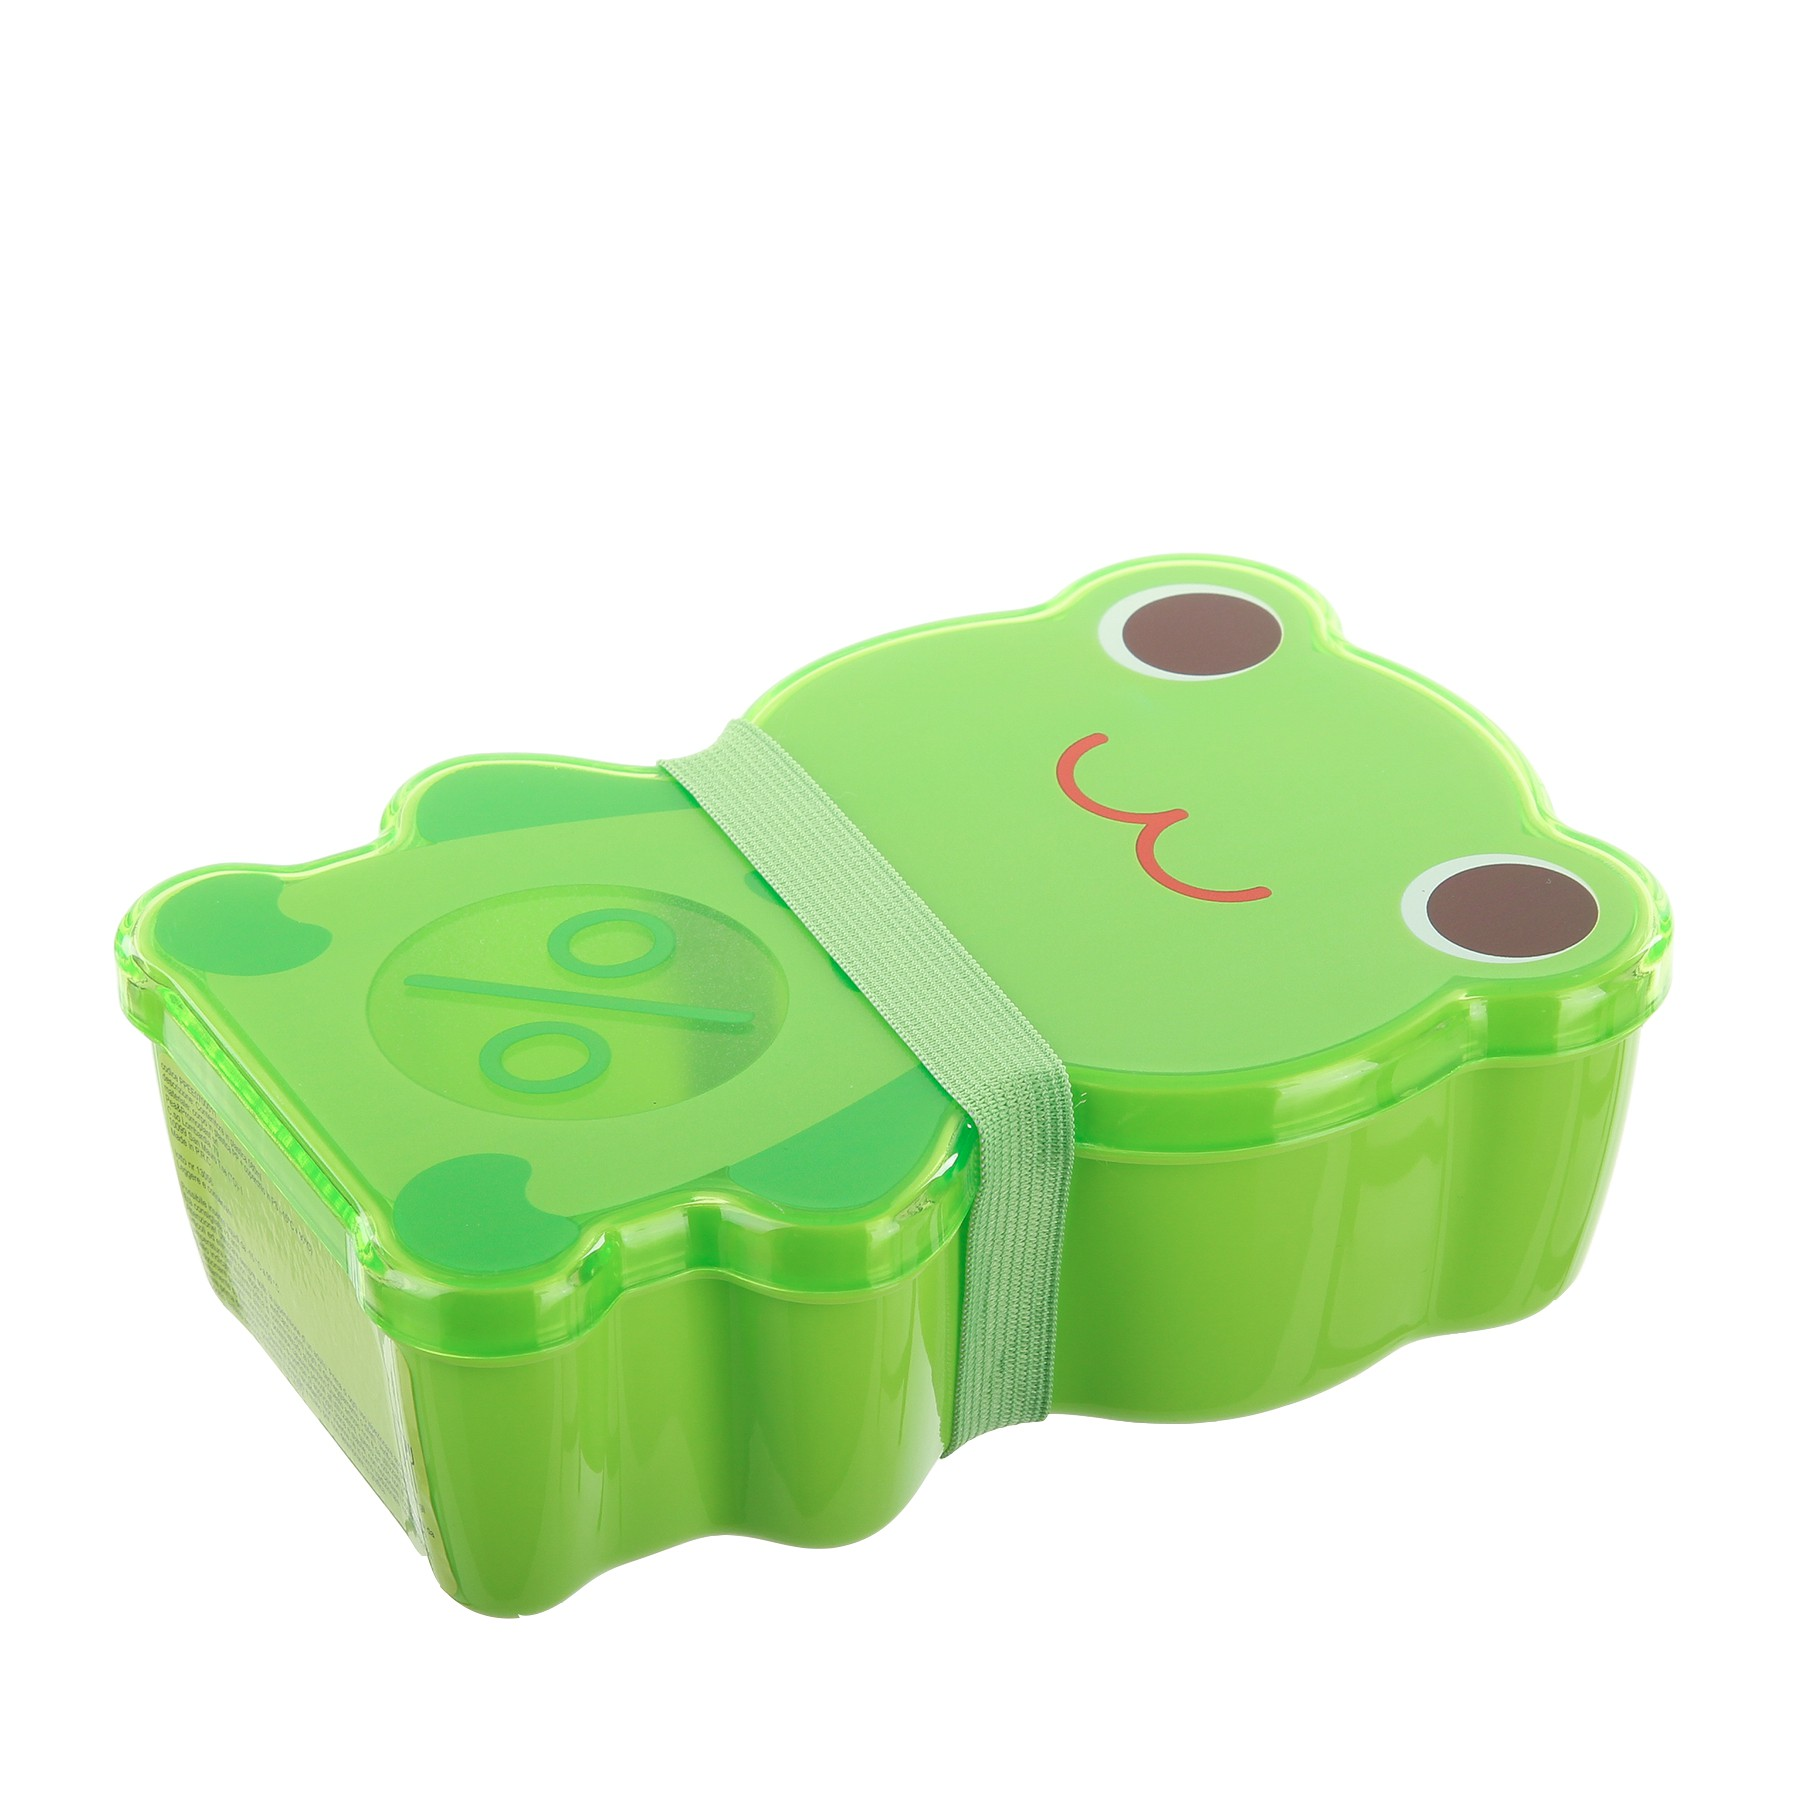 Lunchbox mit Besteck, 580 ml Bild https://cdn03.plentymarkets.com/zsy4vjx32p87/item/images/5033/full/13053-ama-01.JPG